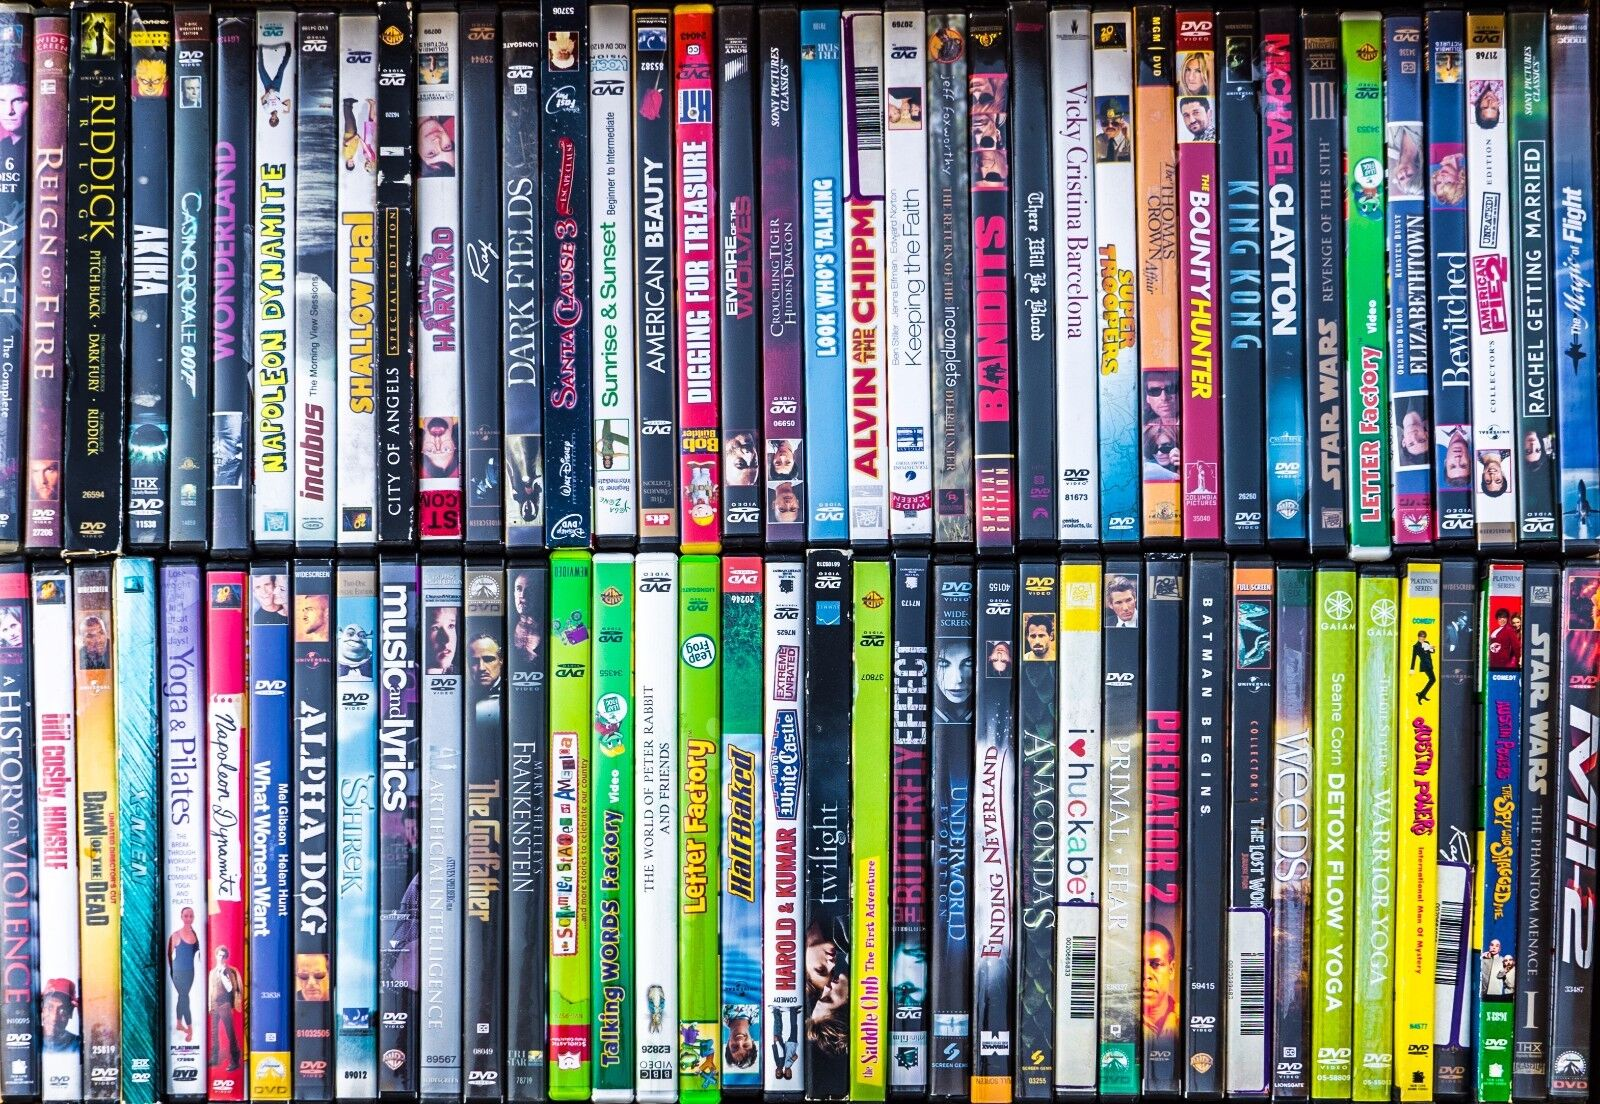 Lots 100 Used ASSORTED DVD Movies Bulk DVDs Used Lot Wholesale Liquidation Media